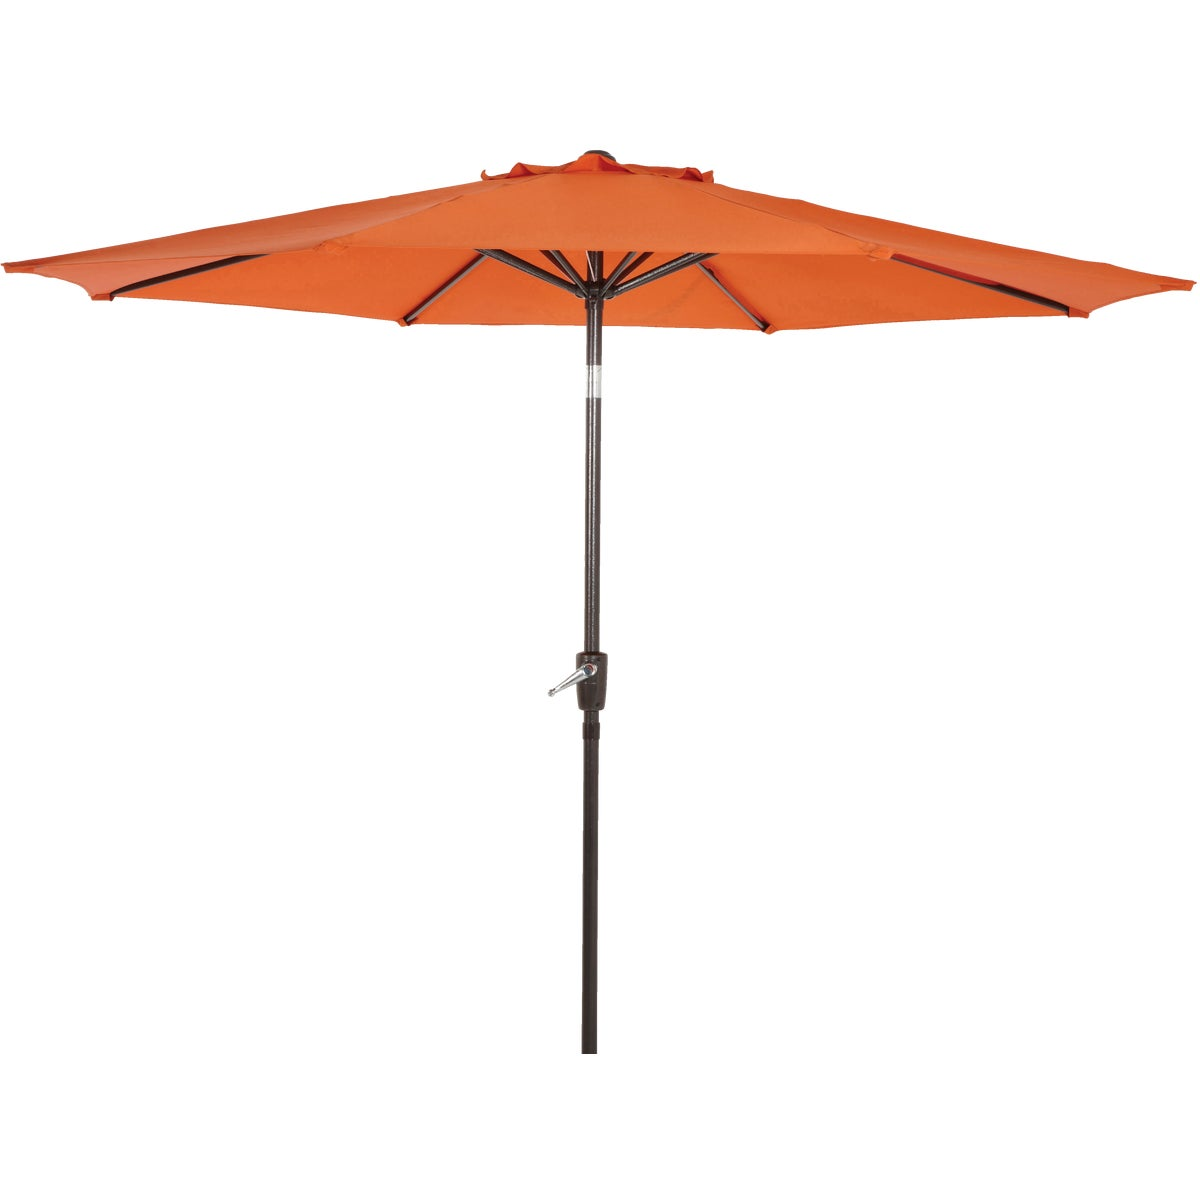 9' ORANGE ALUM UMBRELLA - TJAU-004A-270-ORG by Do it Best